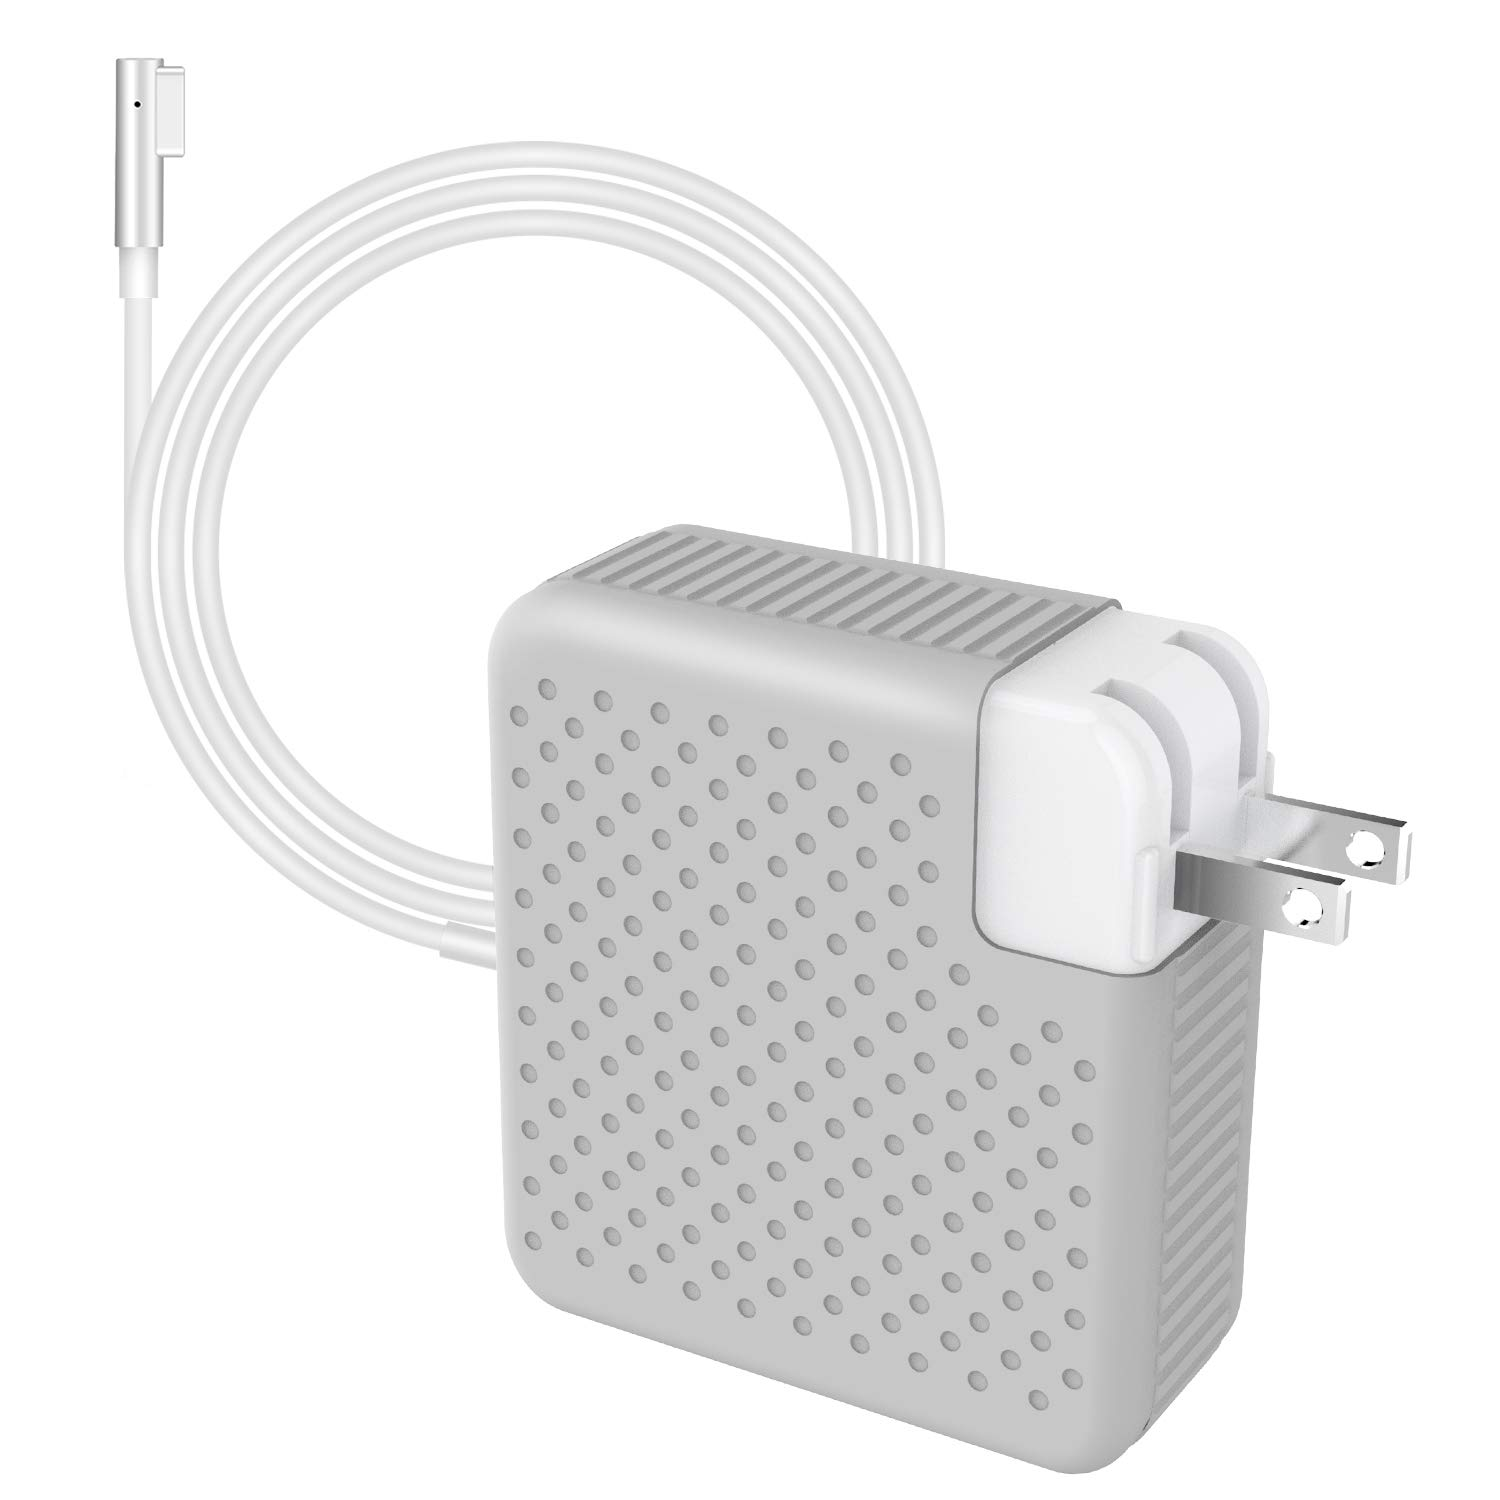 MITIME Replacement Compatible With Macbook Pro Charger 85W Mag safe Magnetic L-Tip Power Adapter Works with 45W, 60W & 85W MacBooks, Charger for MacBook Pro 13''15''17''(Before Summer 2012 Models)